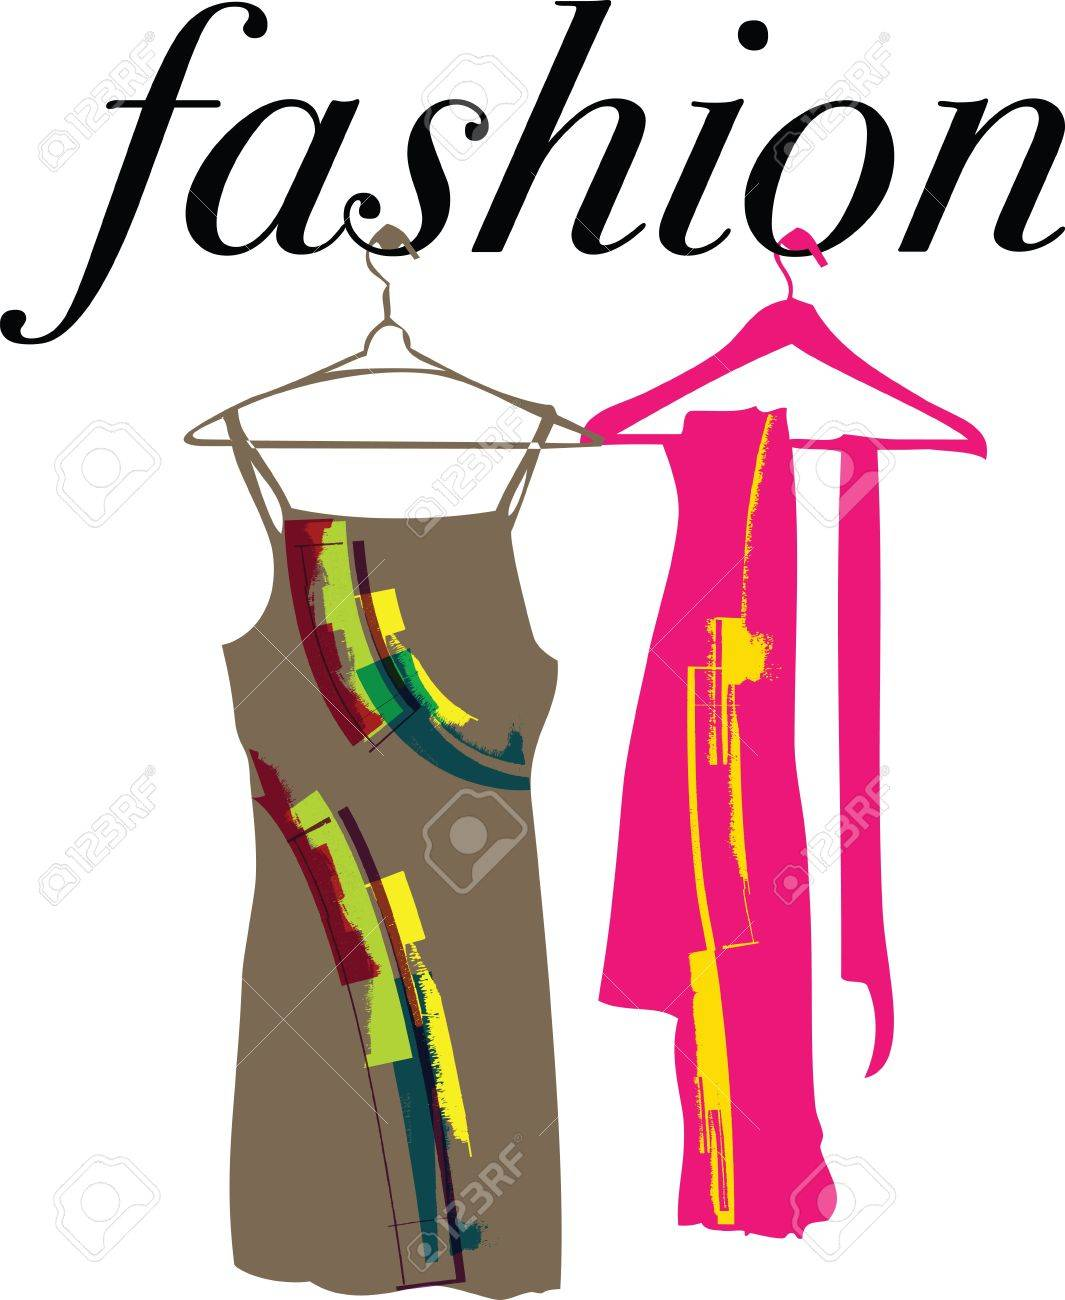 Abstract dresses & scarf illustration Stock Vector - 11000060